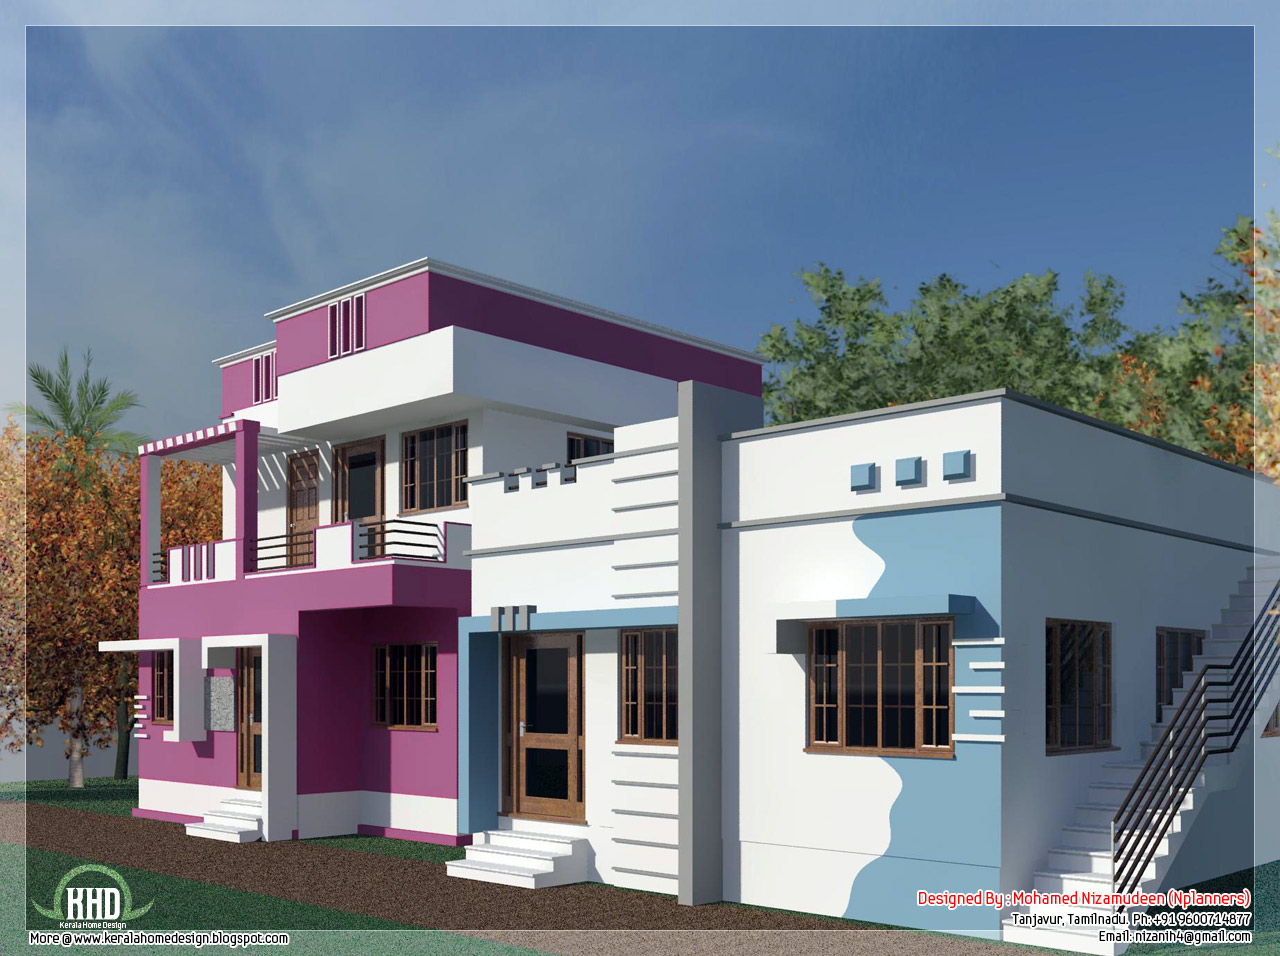 Tamilnadu model home design in 3000 kerala home for Model house photos in indian